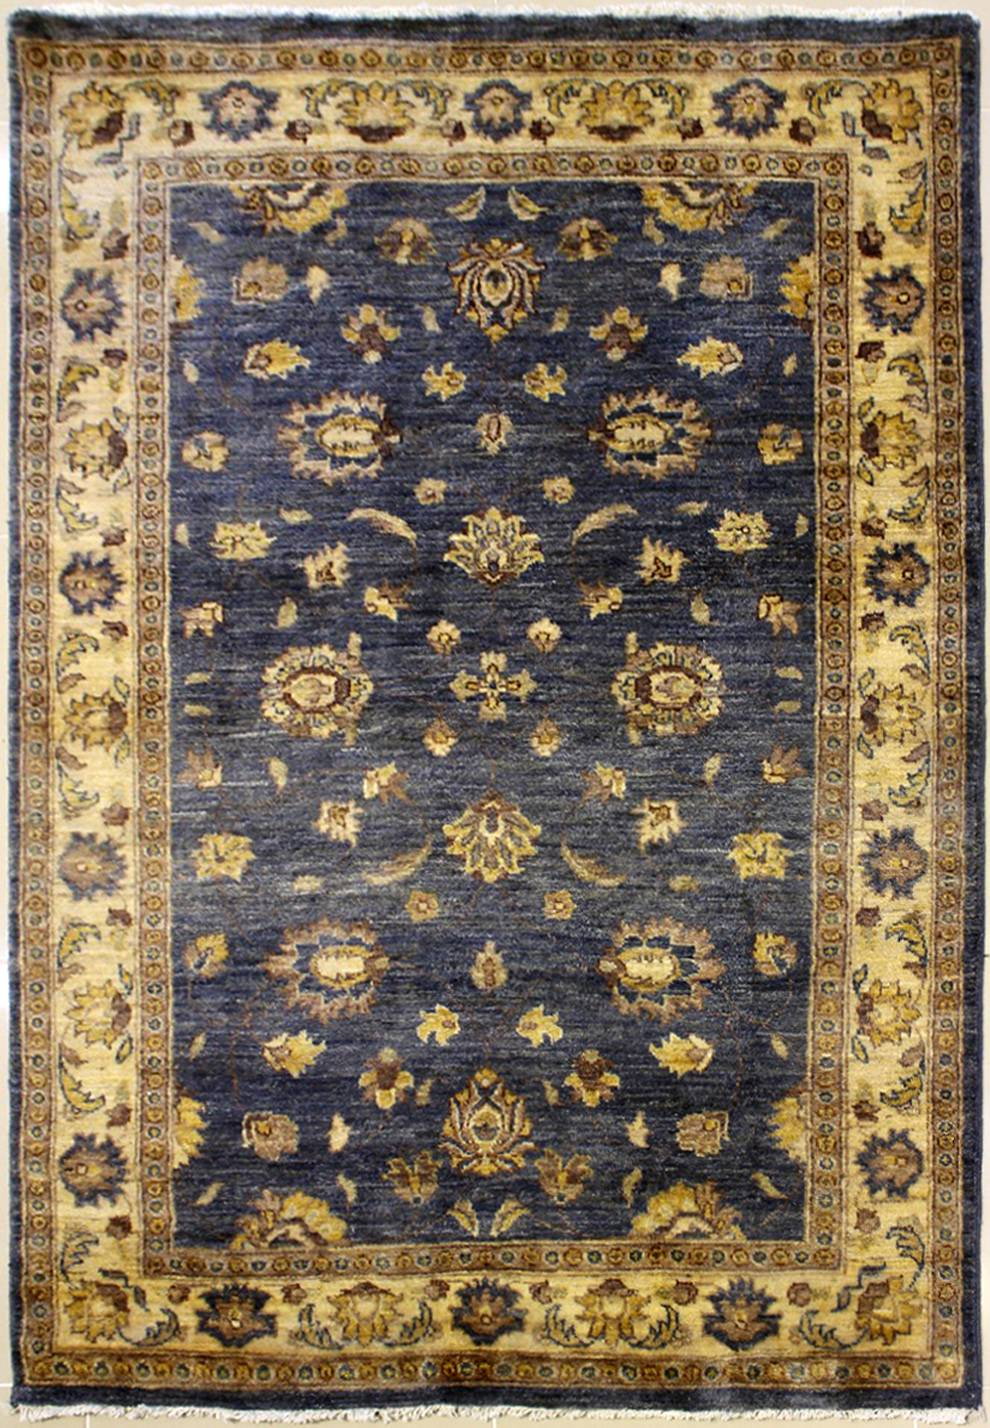 rug carpet style bazaar hand the rustic knotted vintage pin retro orient